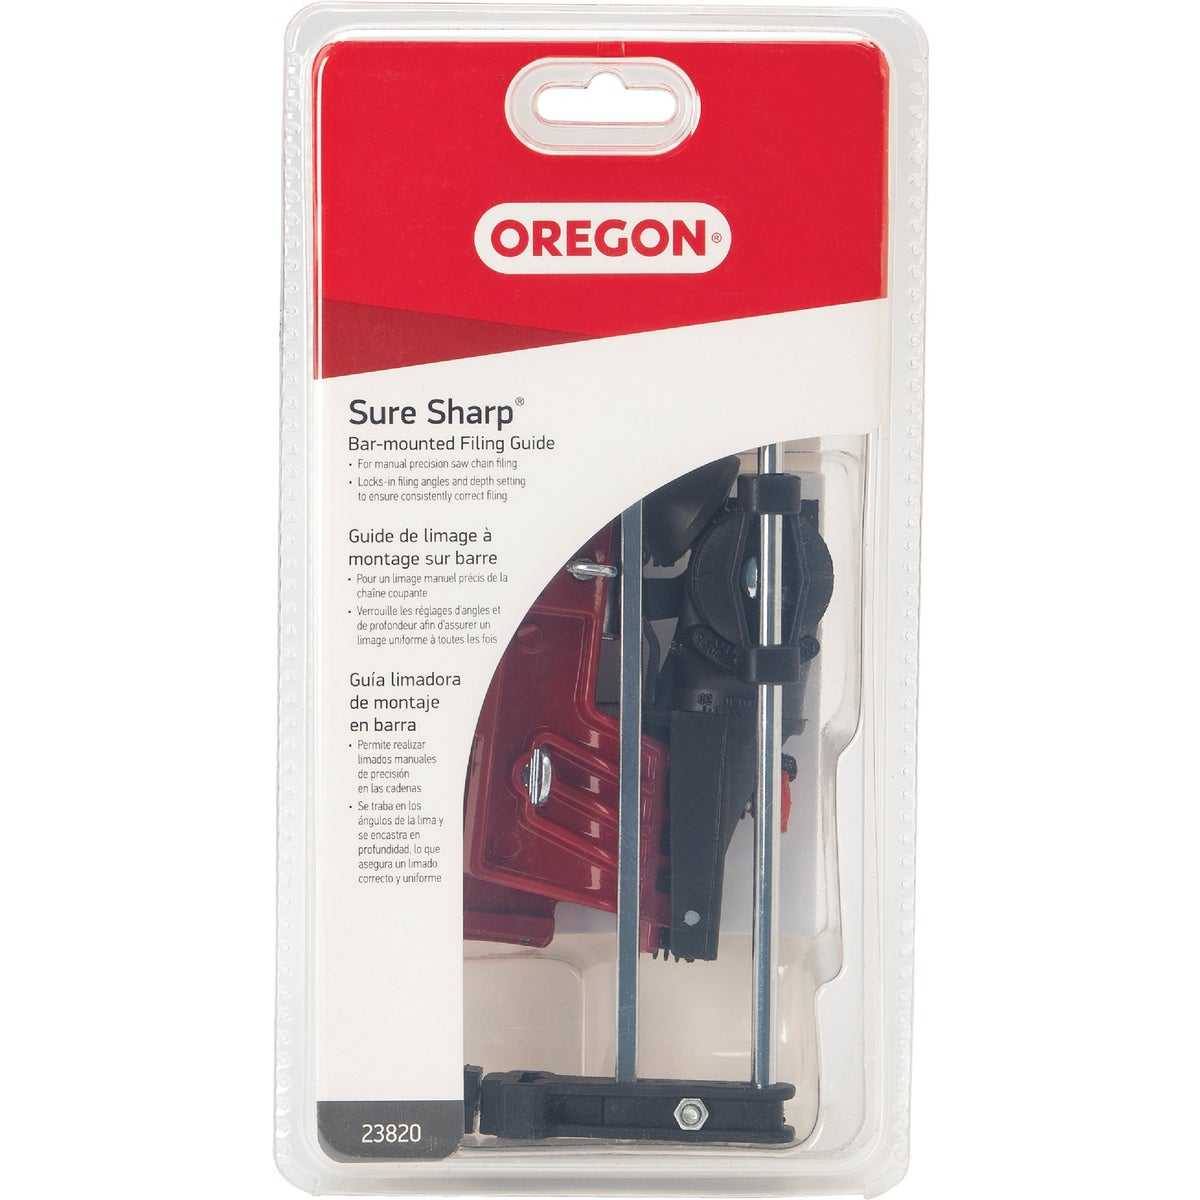 CLAMP ON SURE SHARP - 23820 by Oregon Cutting Systm